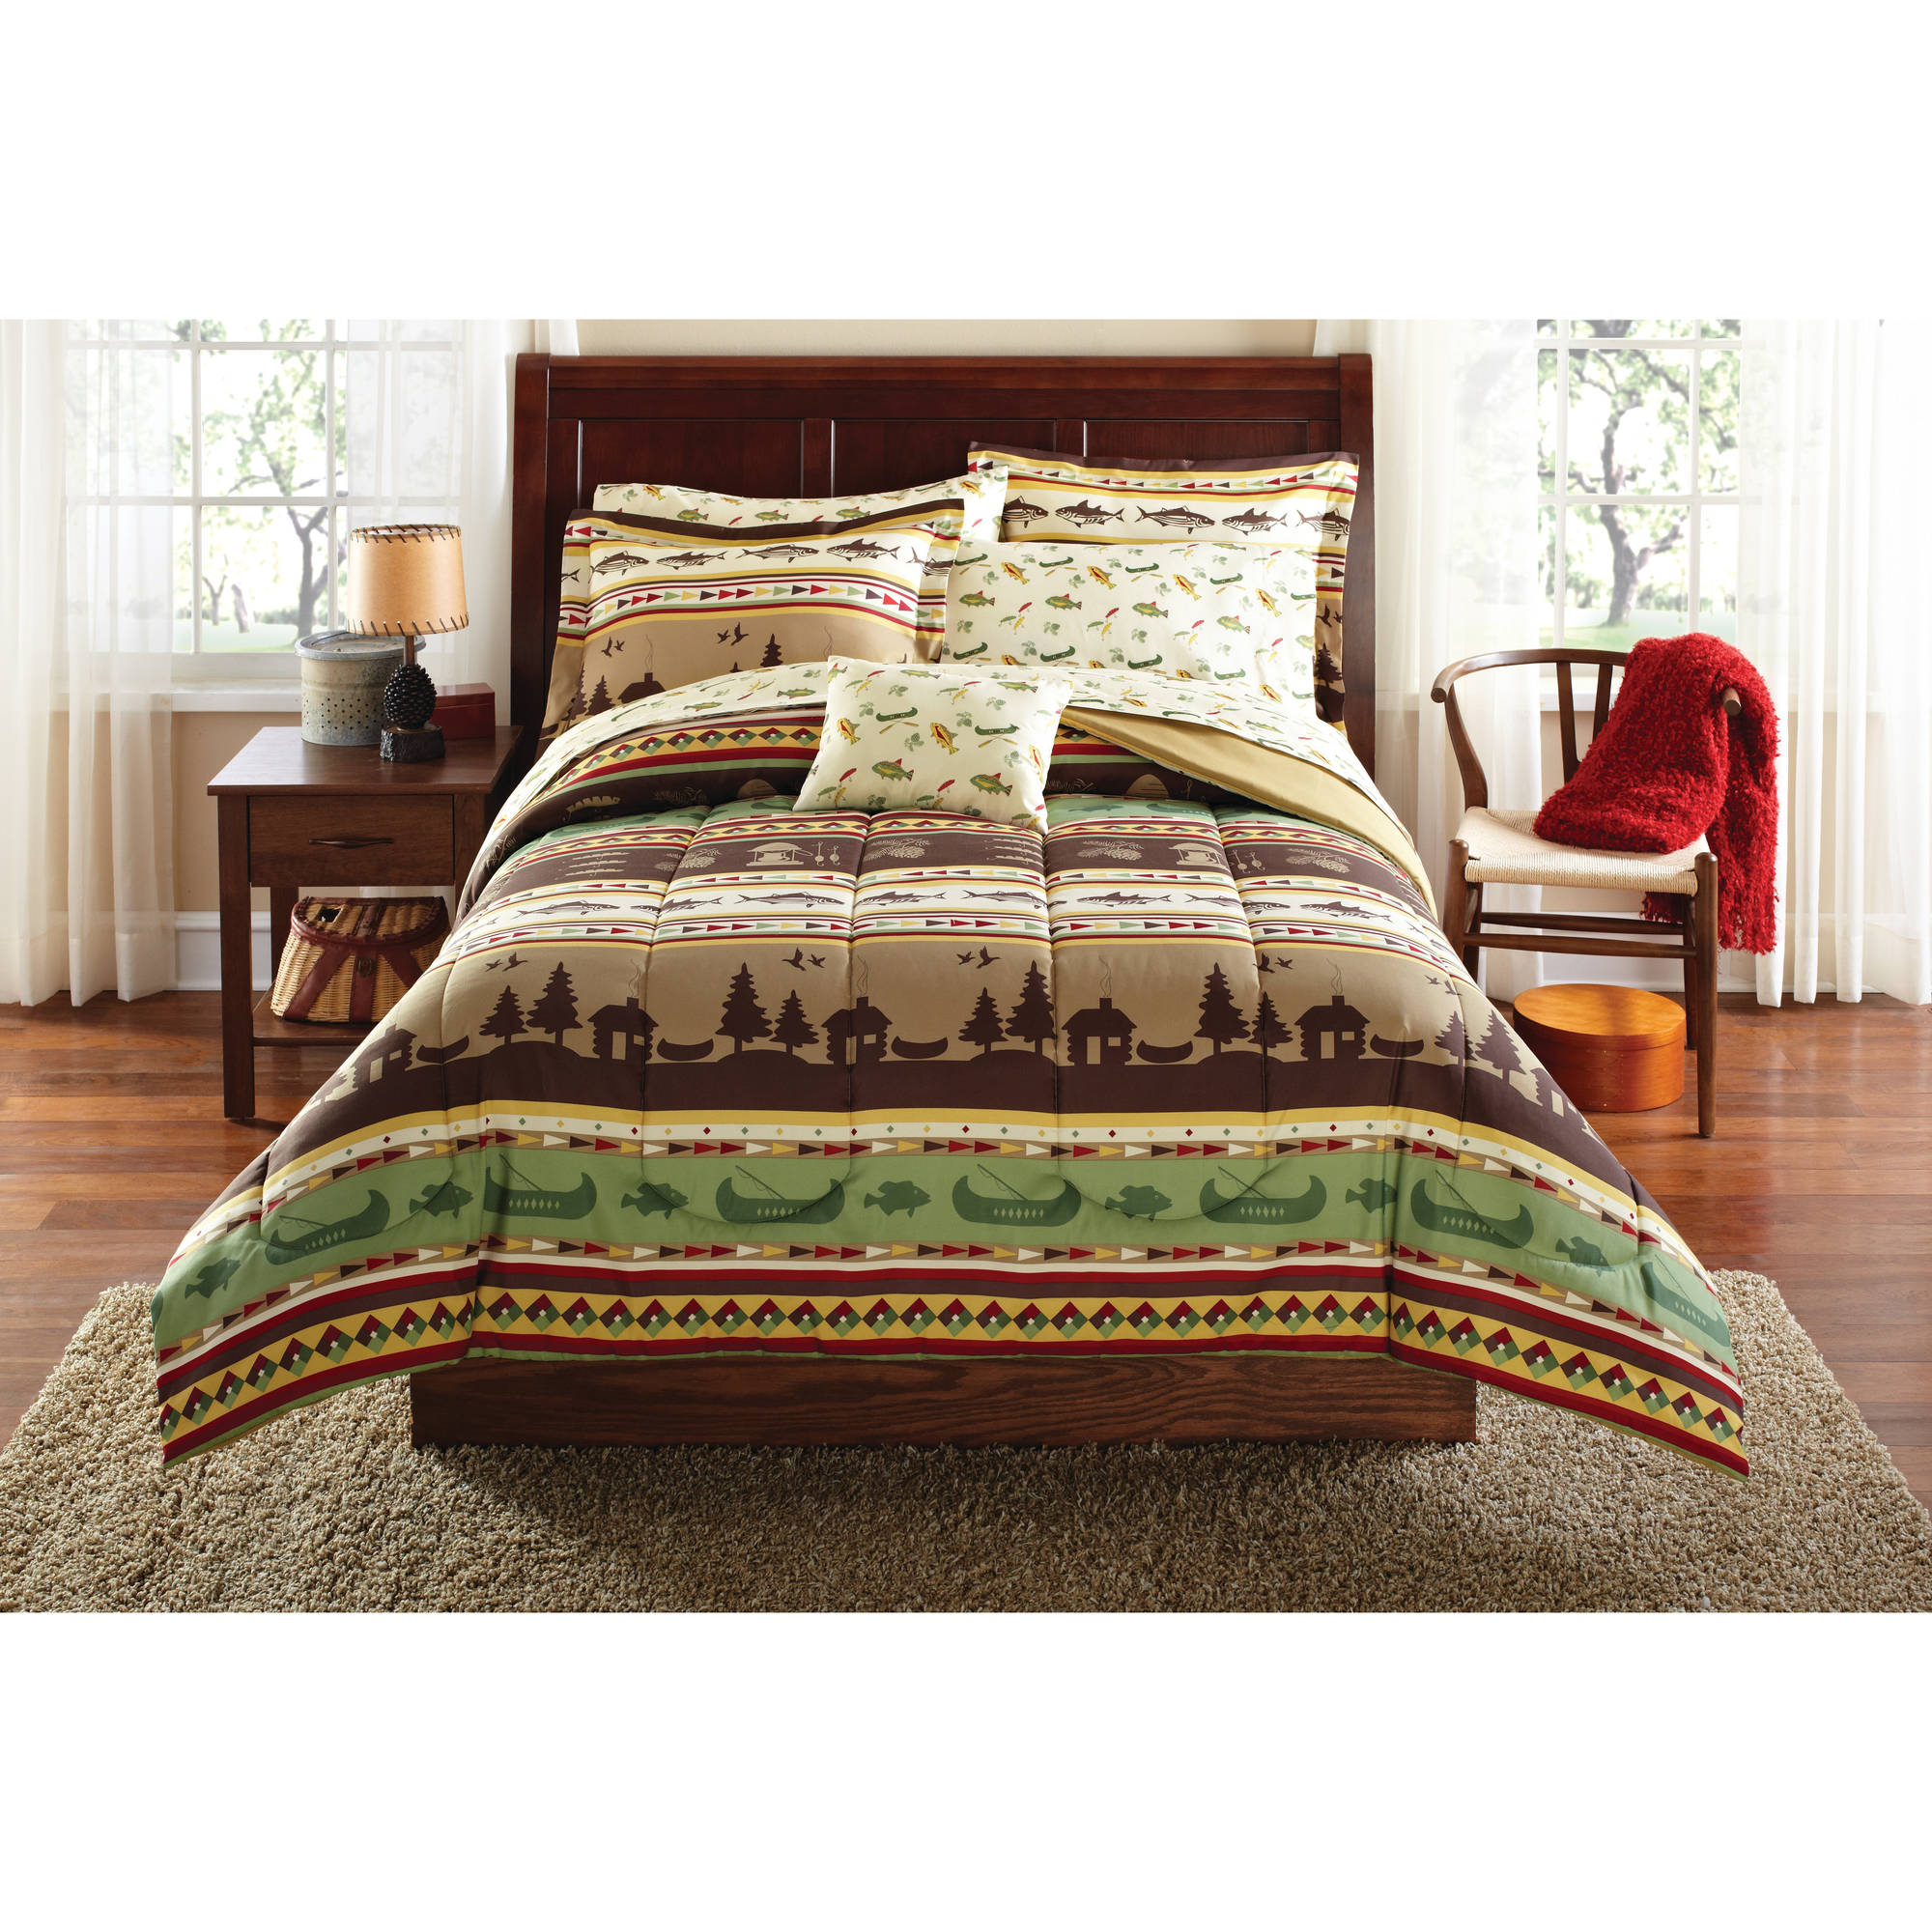 Mainstays Gone Fishing Bed In A Bag Coordinating Bedding Set   Walmart.com